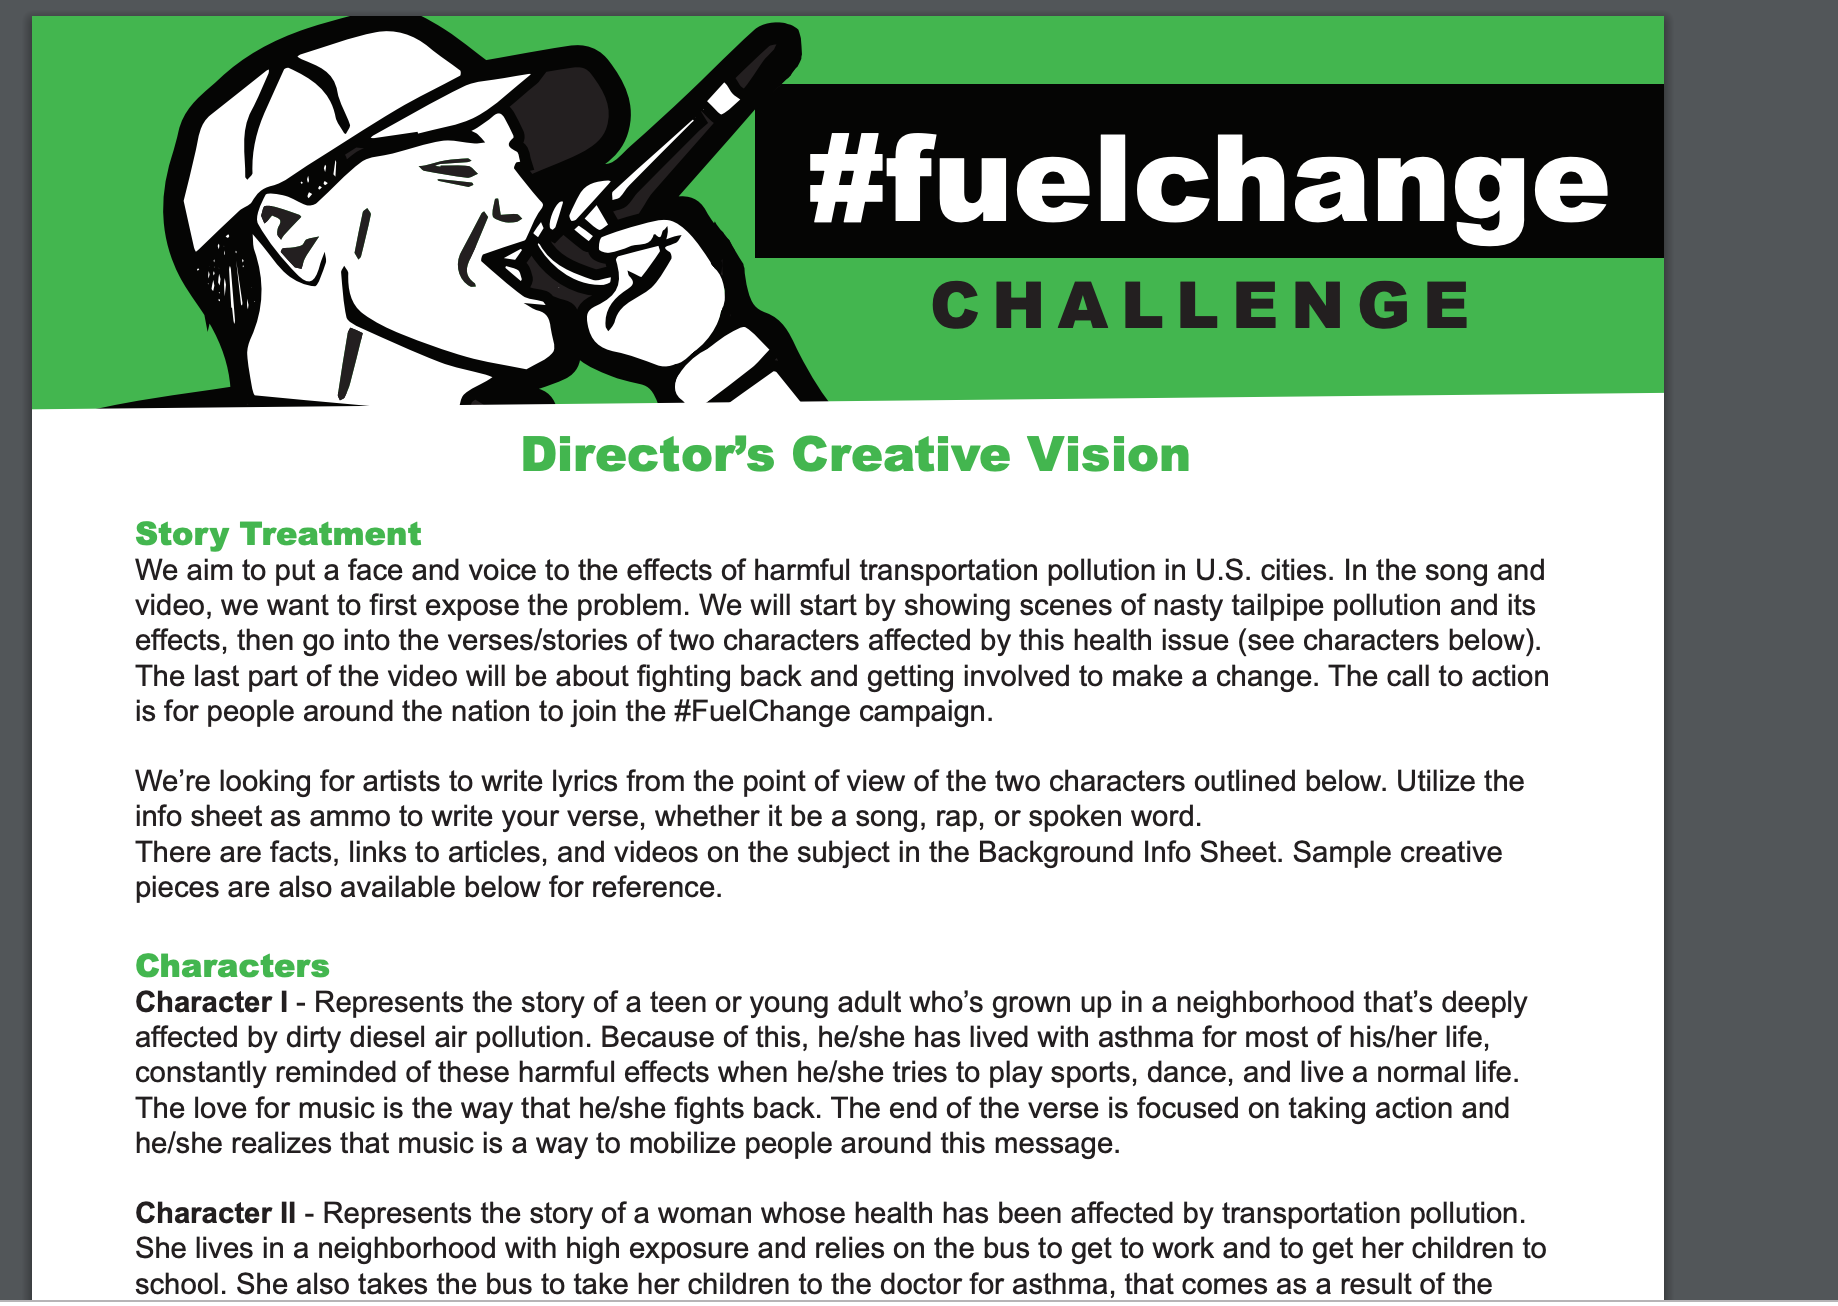 Fuel Change Challenge Director's Creative Vision